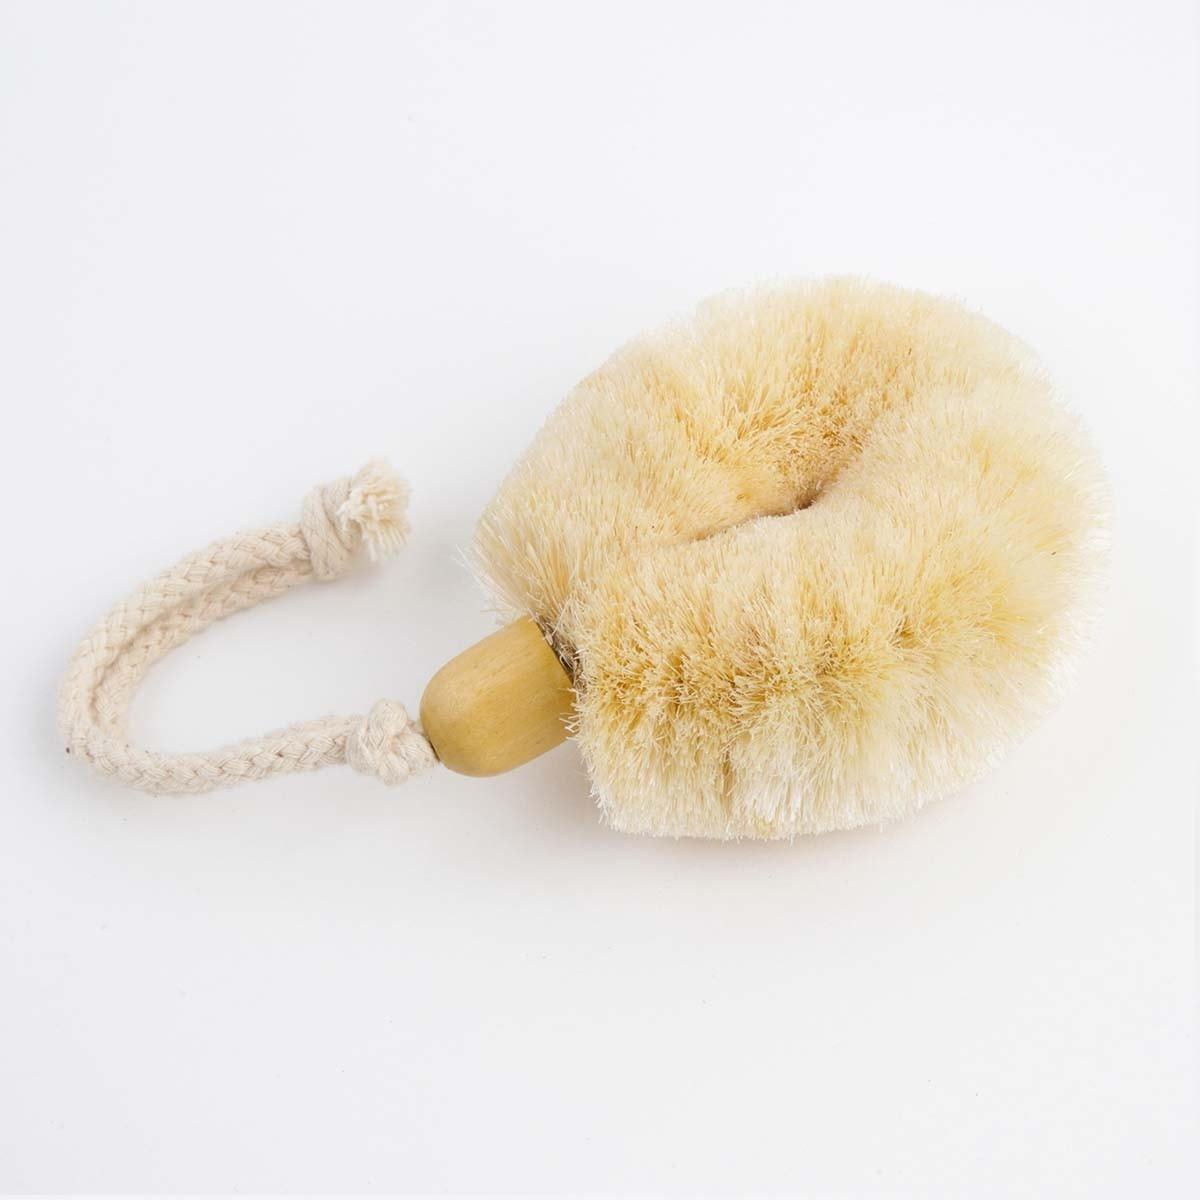 Import Ants Palm Body Brush Home